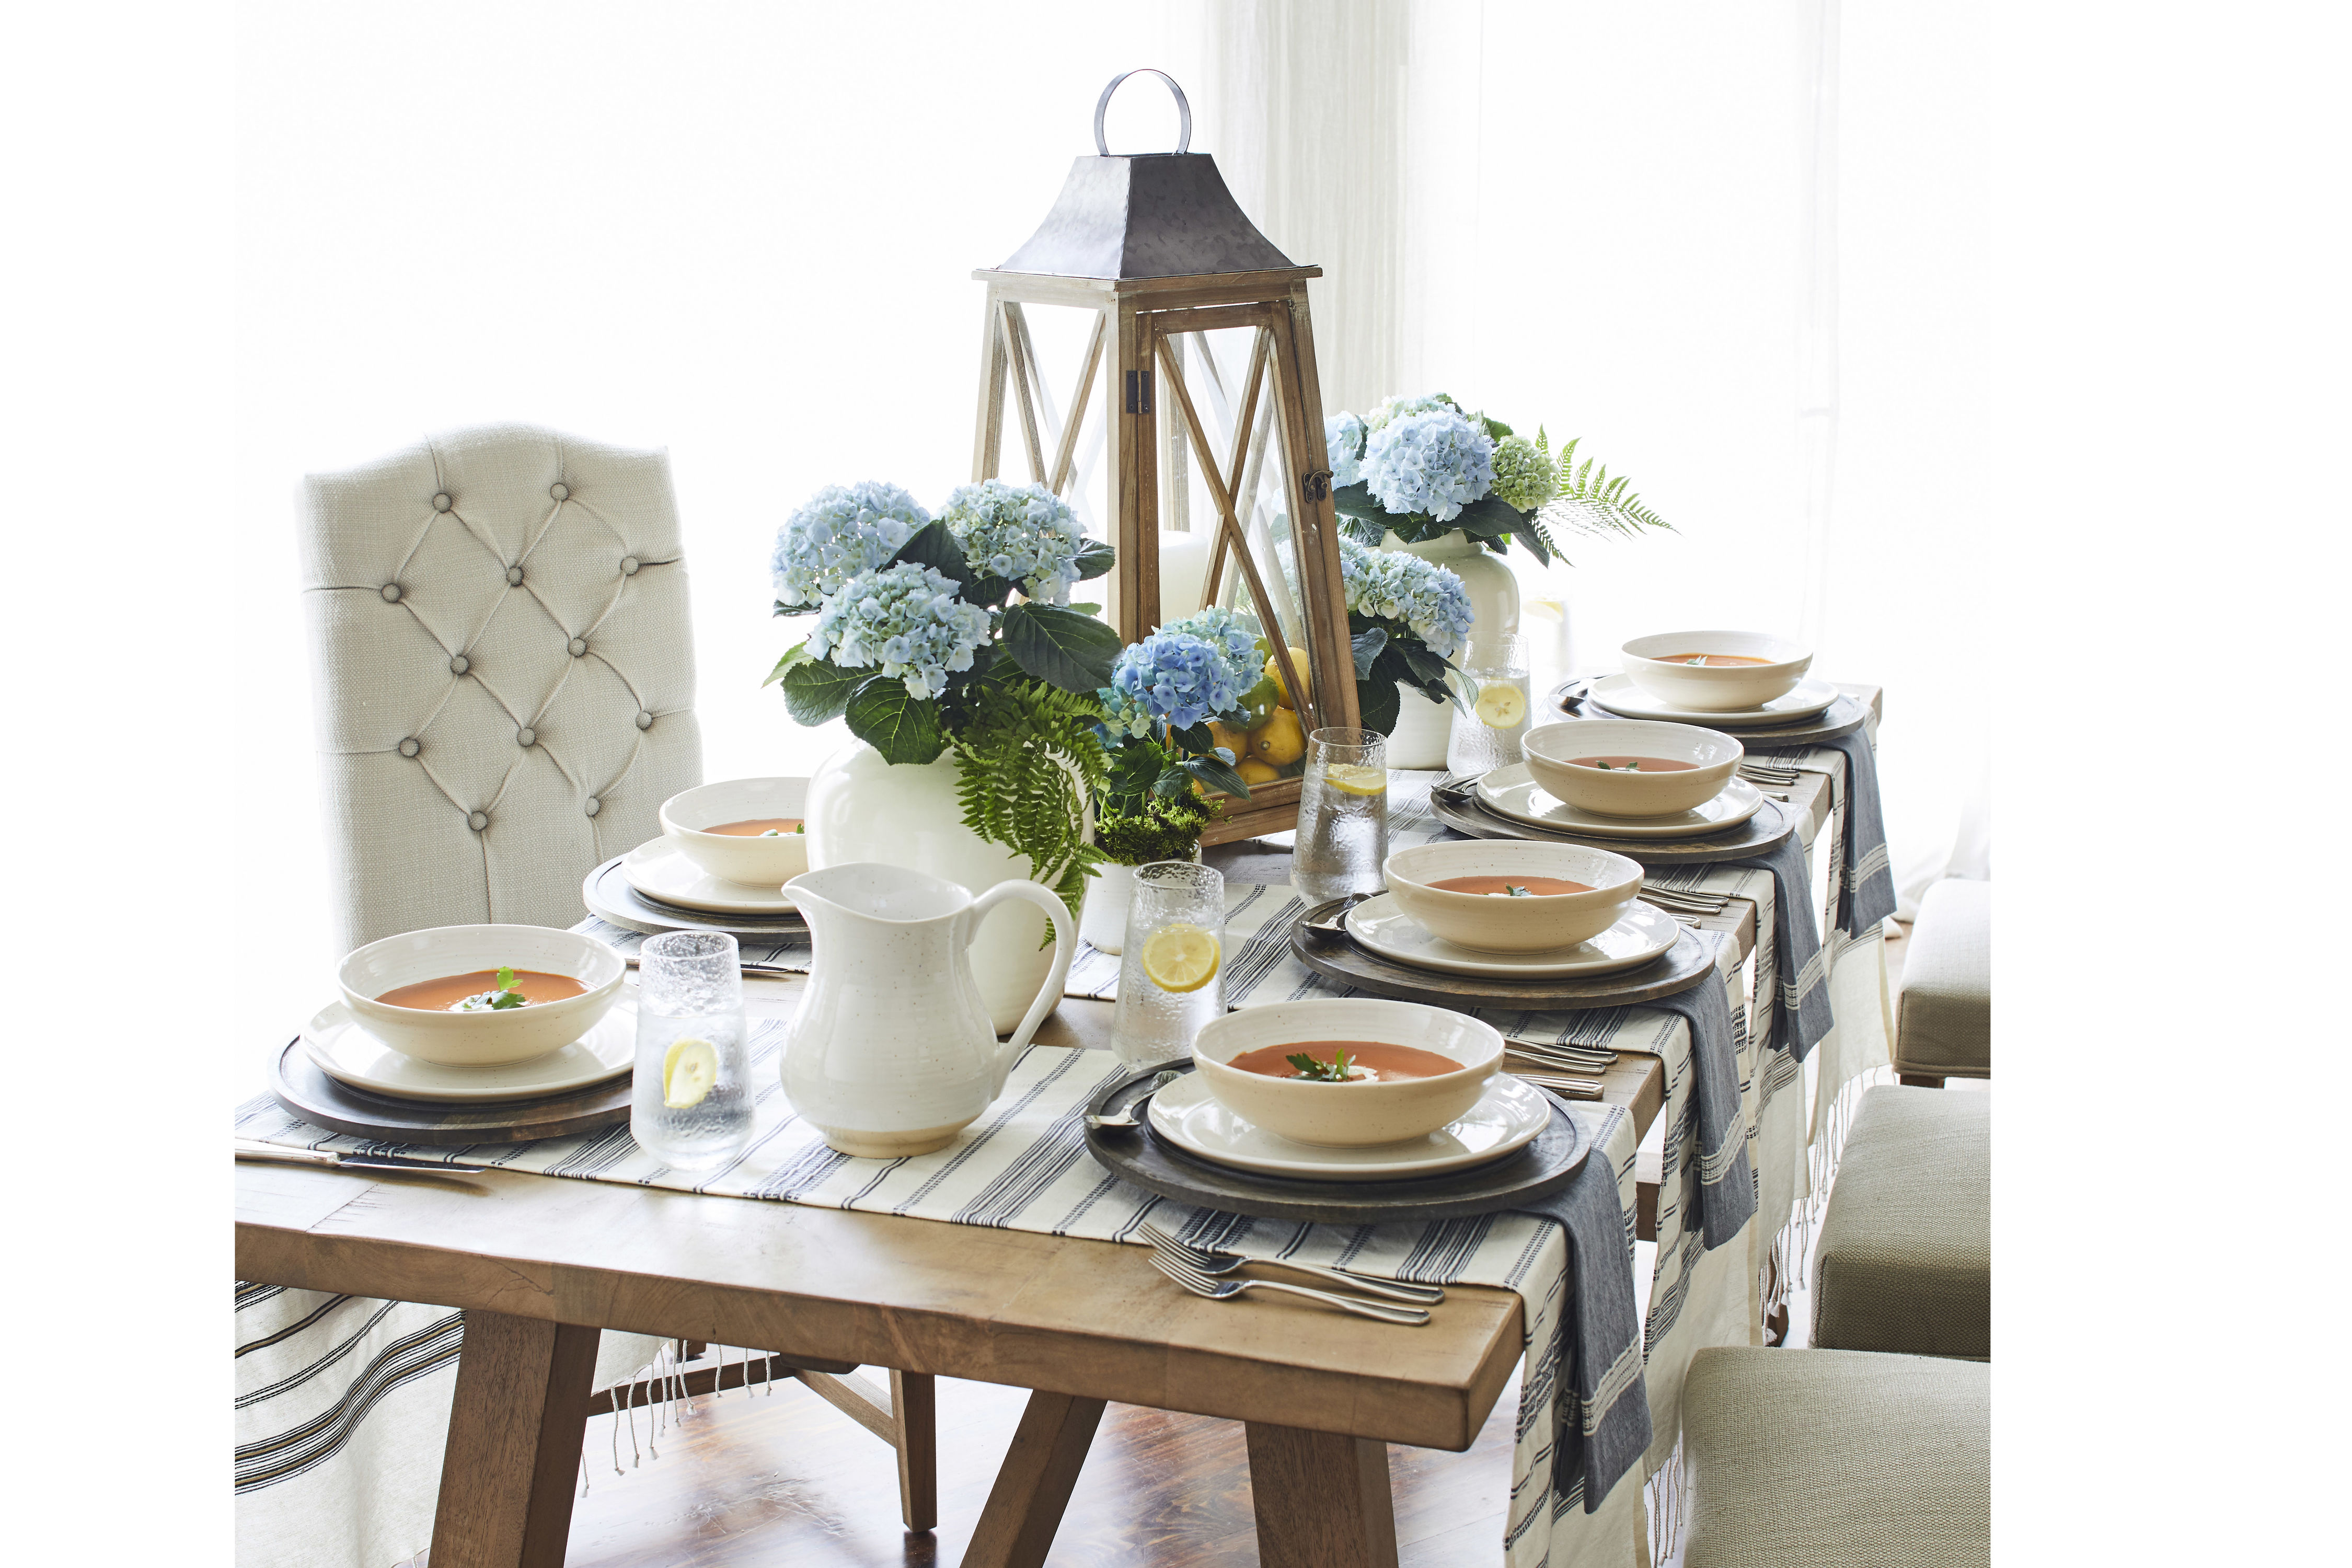 Our New Southern Living Collection Is Blush, Bashful, and Oh So Southern